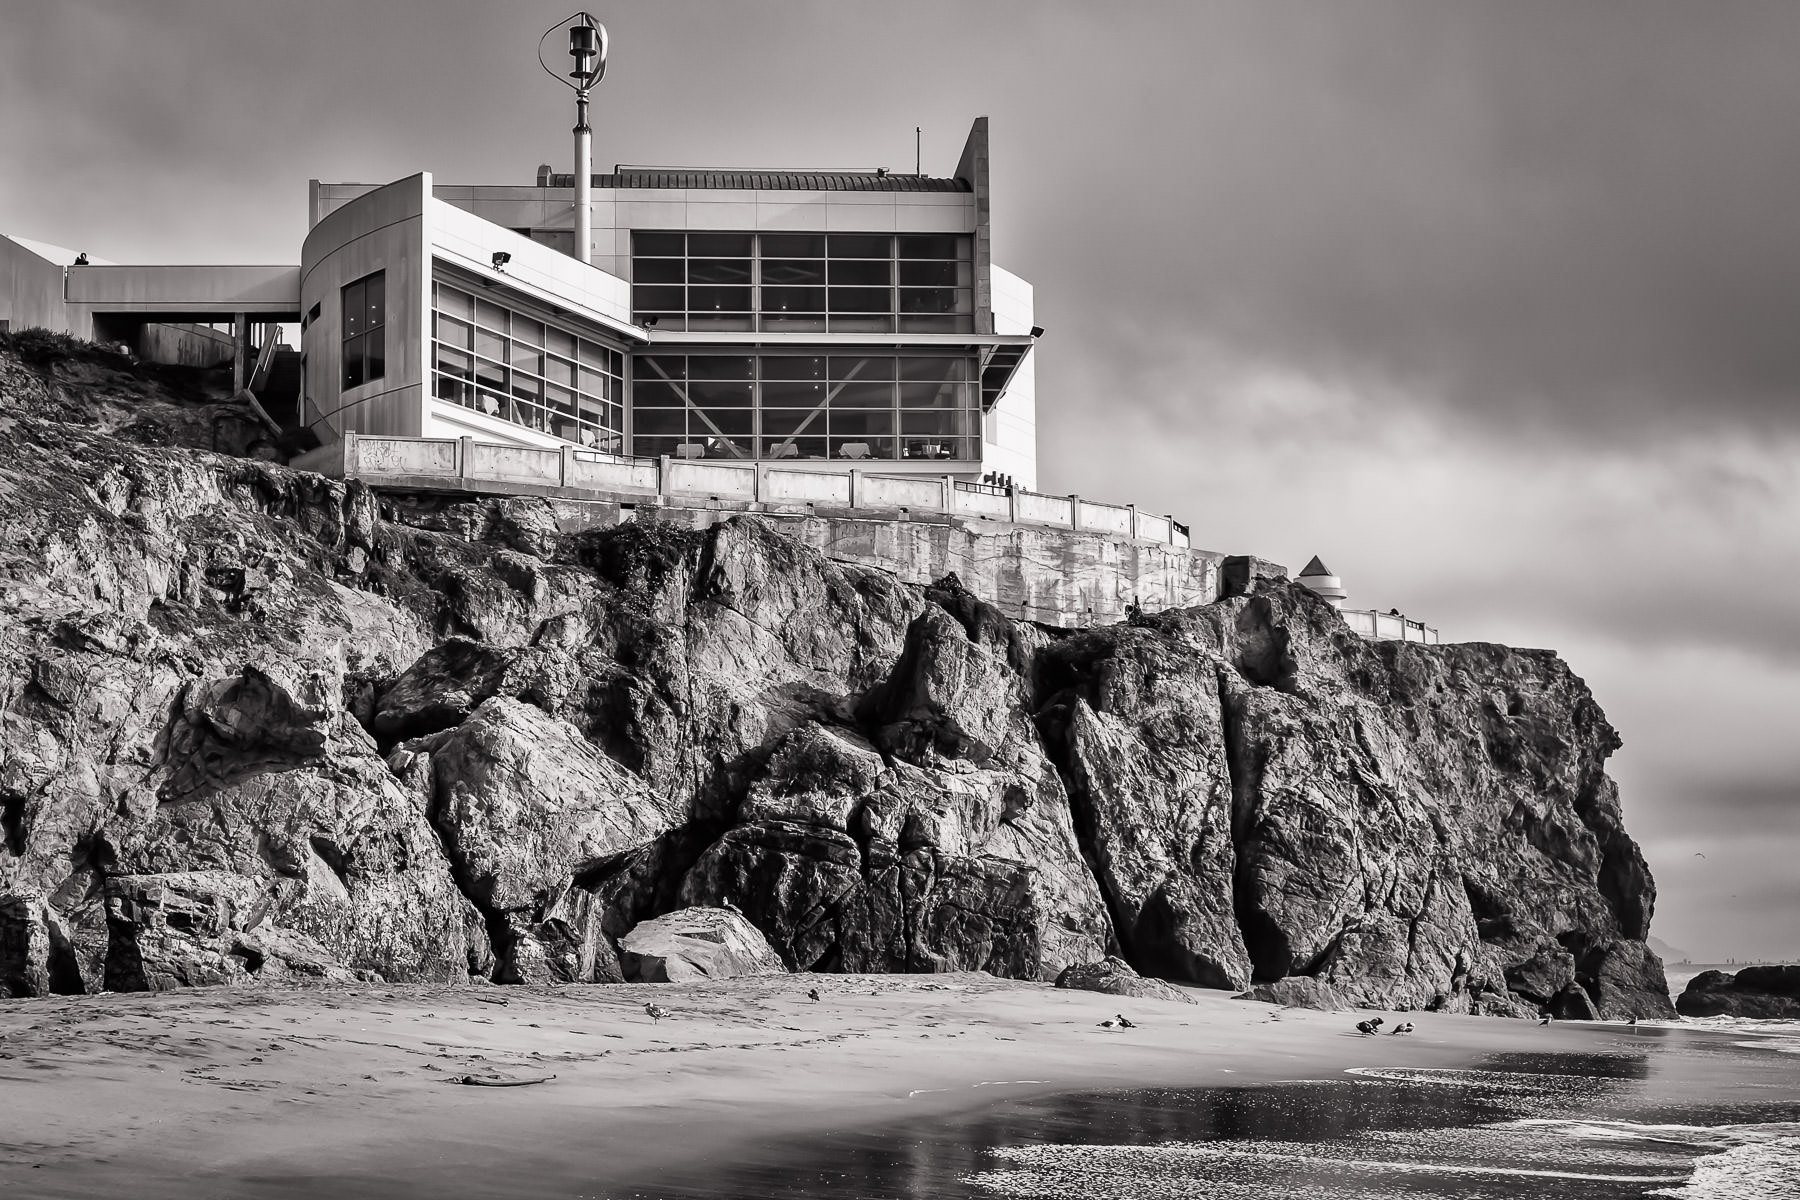 The modern wing of the historic Cliff House restaurant overlooks the beach at Lands End, San Francisco.